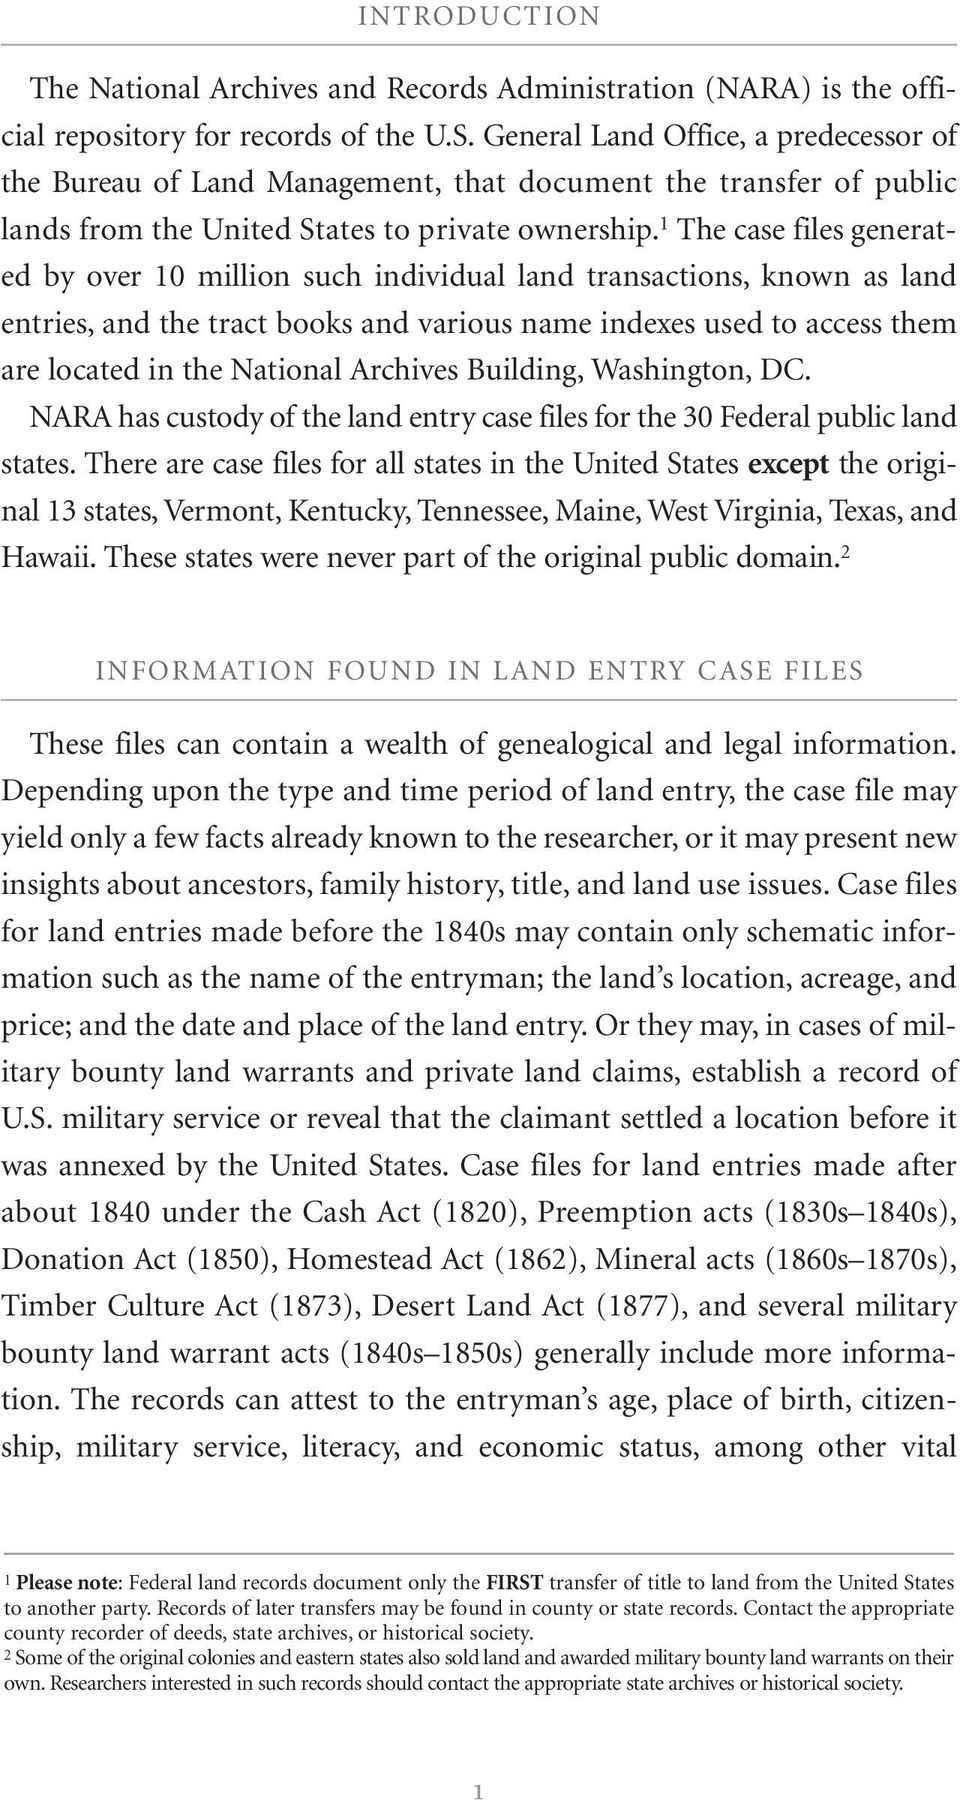 1 The case files generated by over 10 million such individual land transactions, known as land entries, and the tract books and various name indexes used to access them are located in the National